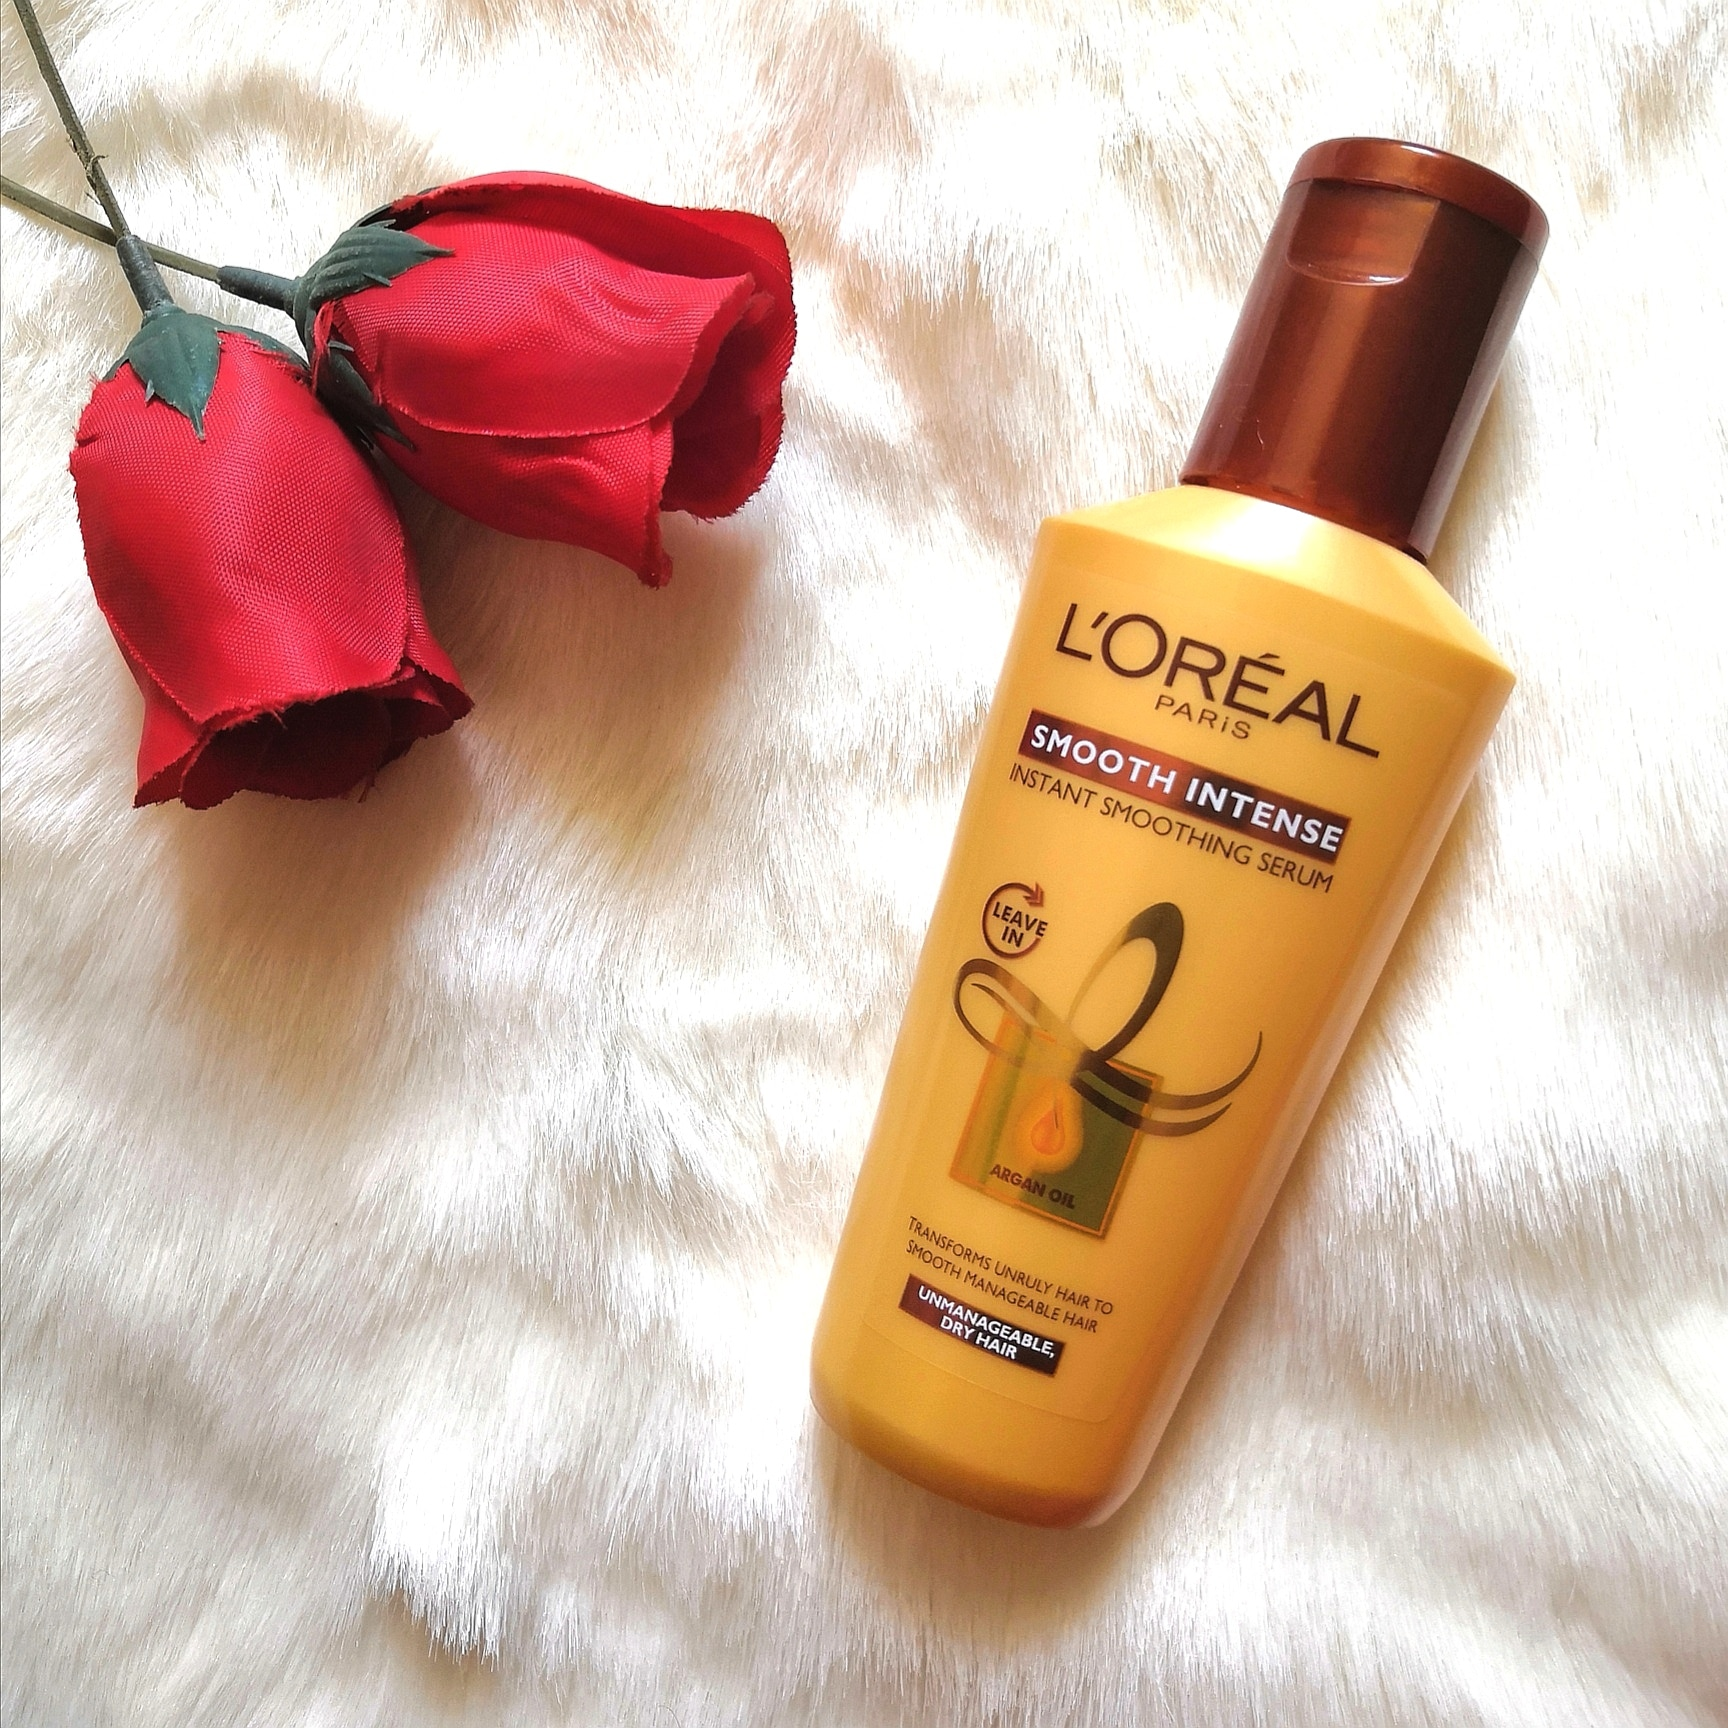 L'Oreal Paris Smooth Intense Instant Smoothing Serum -Favourite affordable hair serum-By stylefitjanu